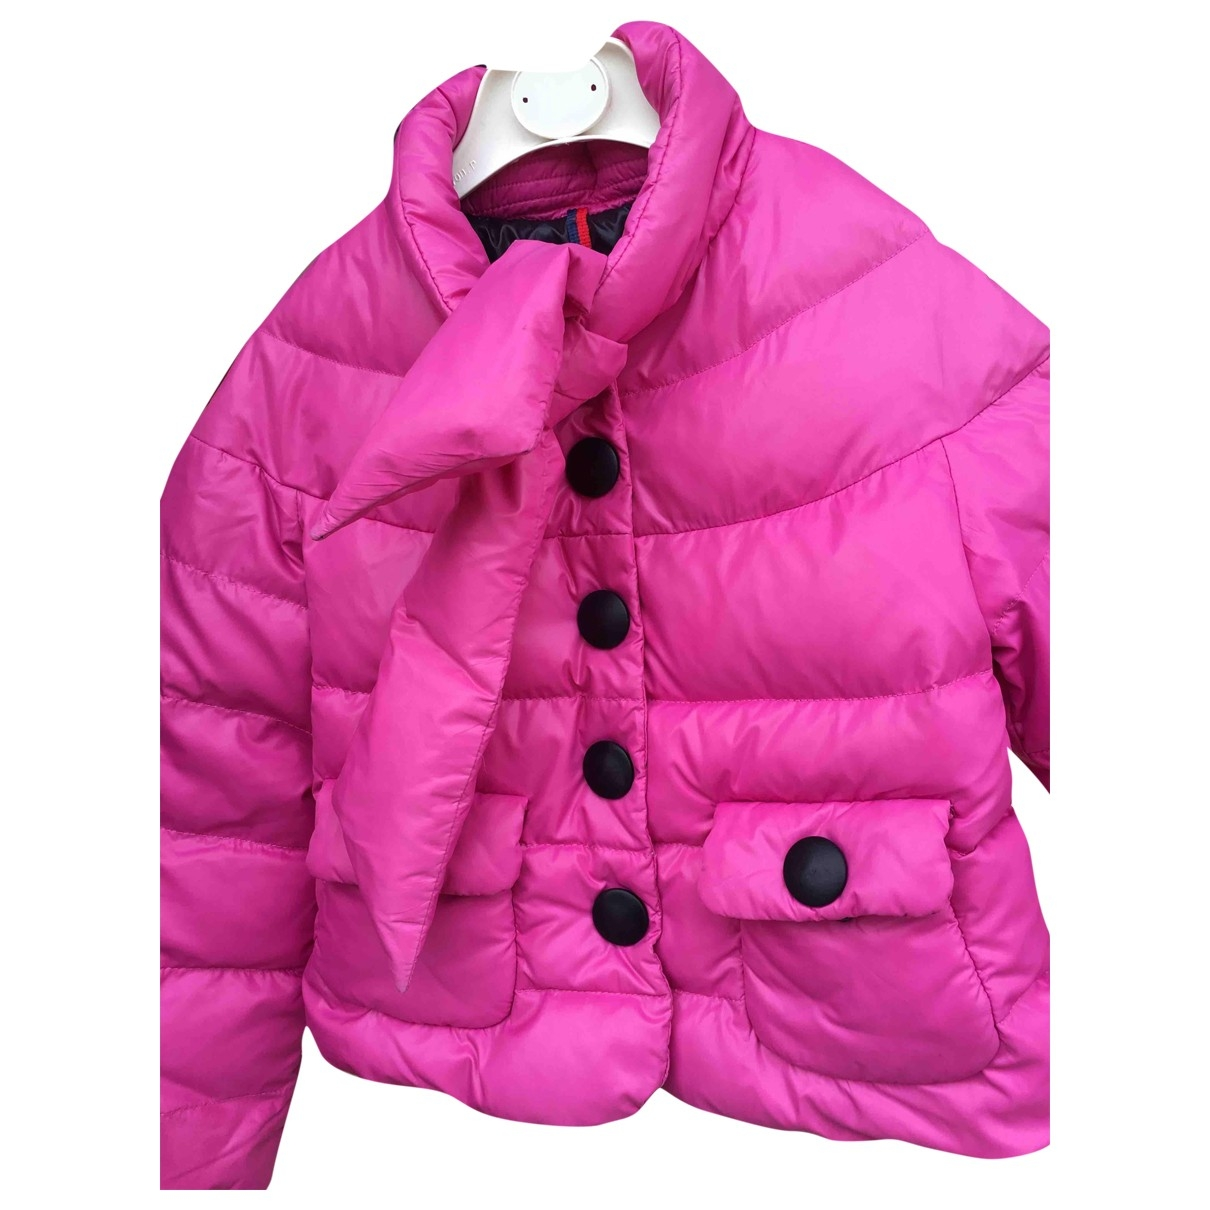 Moncler \N Pink Polyamide jacket & coat for Kids 8 years - until 50 inches UK